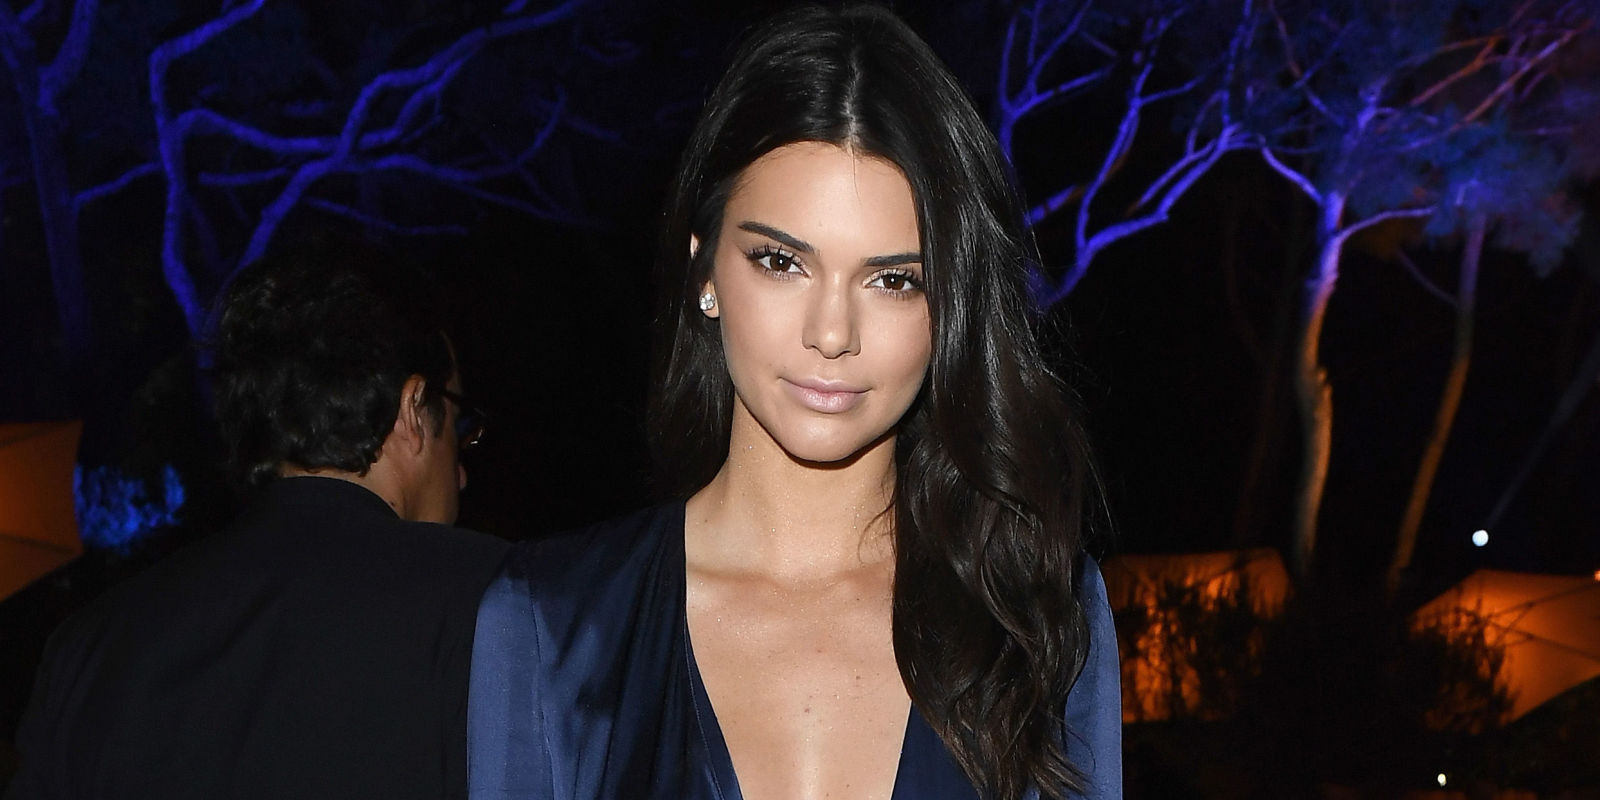 Kendall Jenner Flaunts Her Curves After Confirming She's Dating Blake Griffin